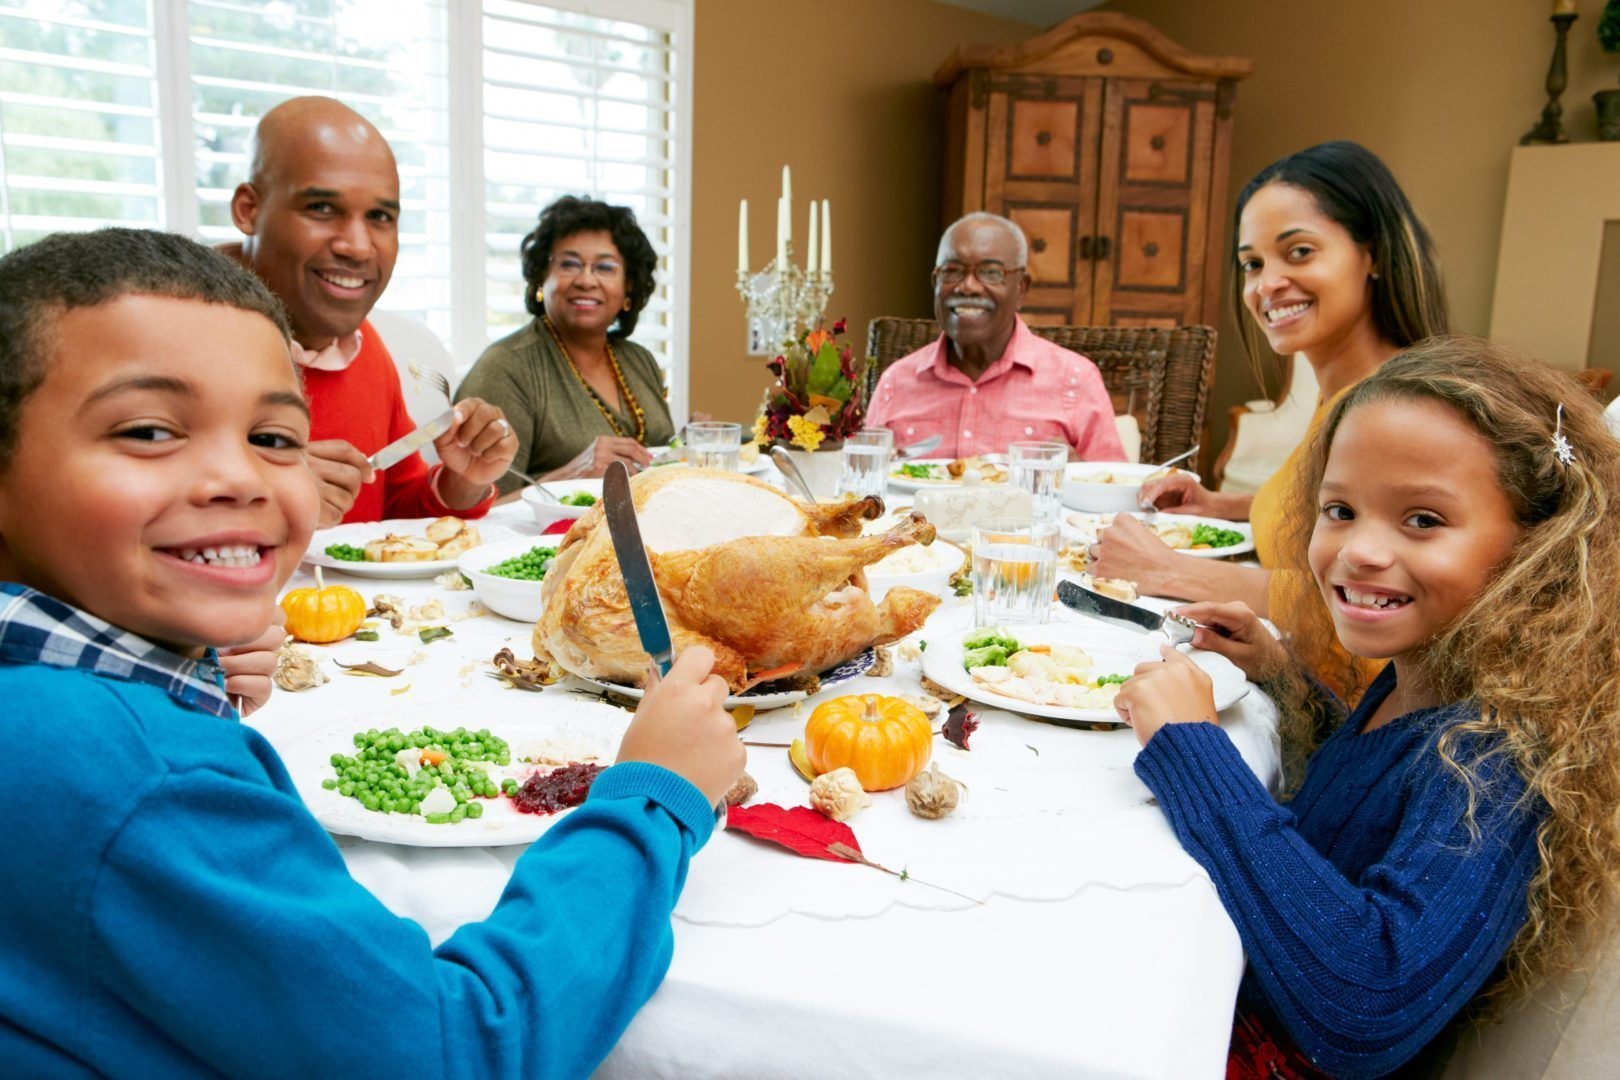 The Significance of Eating Together as a Family